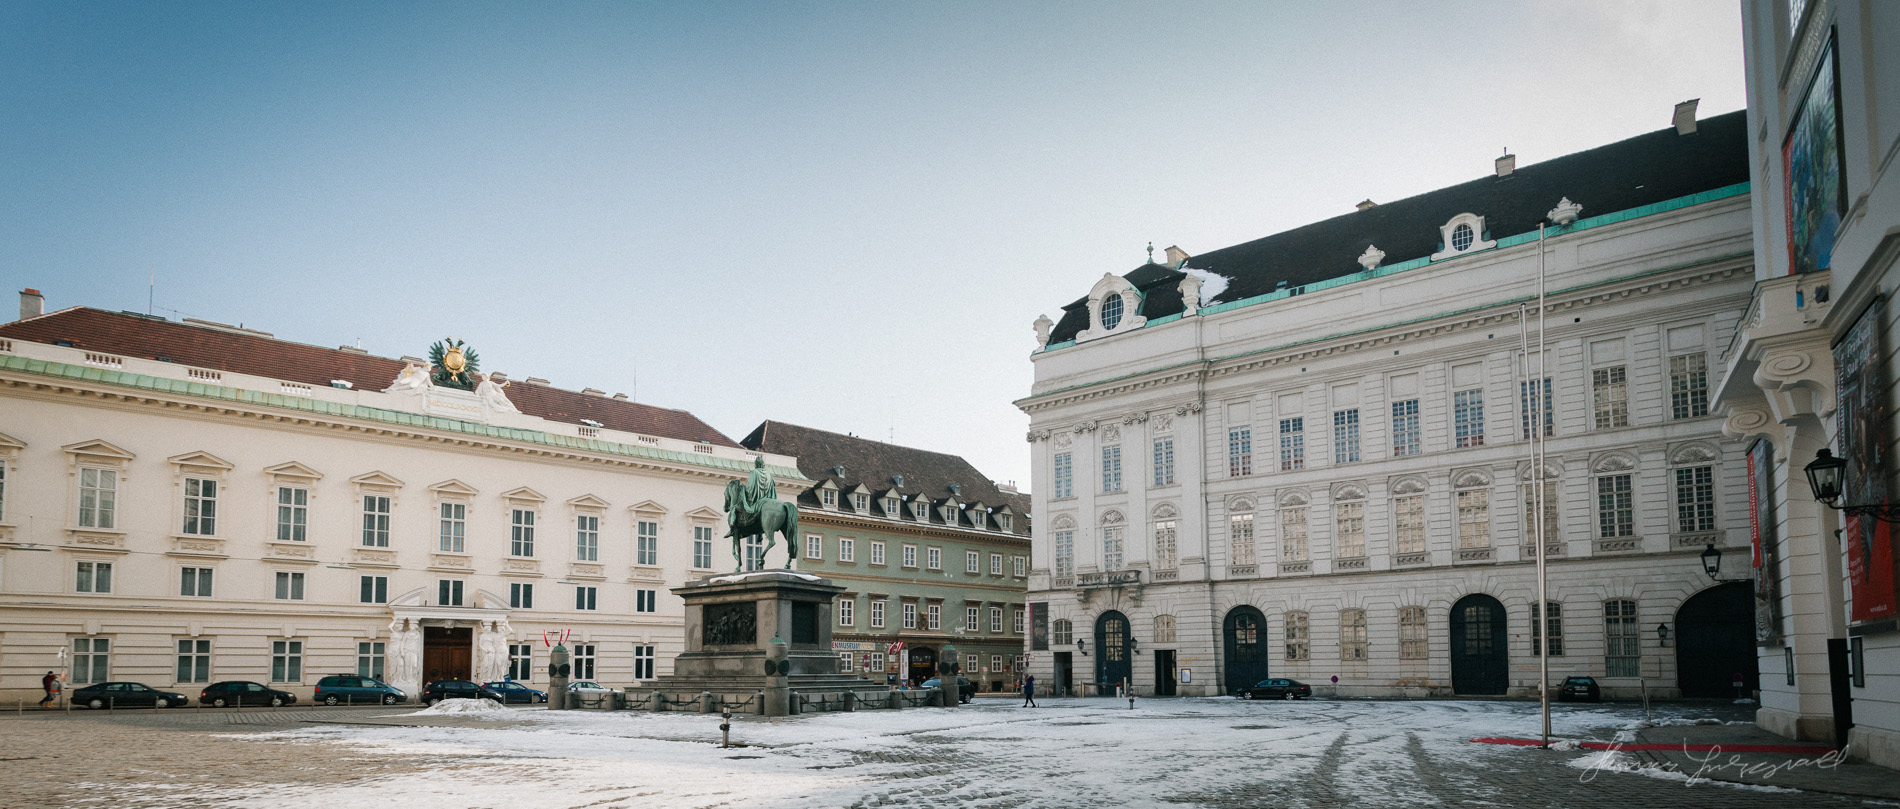 A Snowy Courtyard in  Vienna